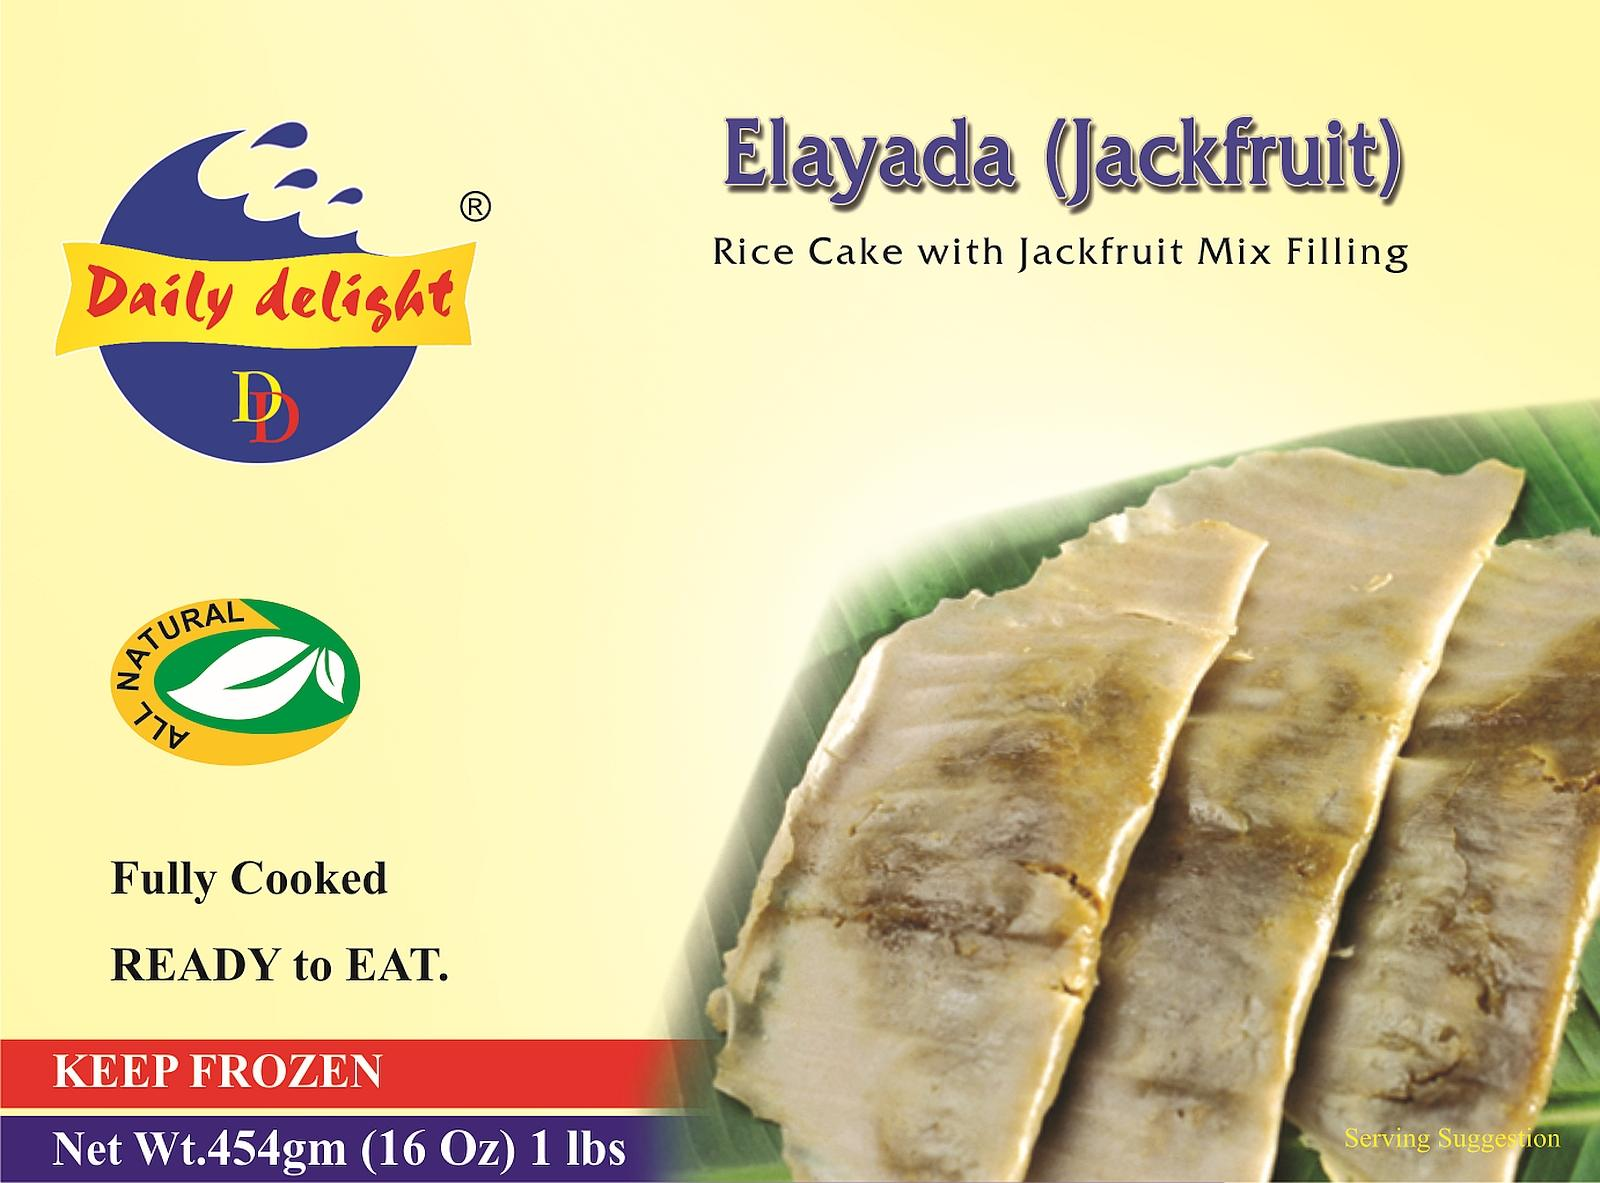 Daily Delight Elayada / Jackfruit (Frozen - 1 lb)